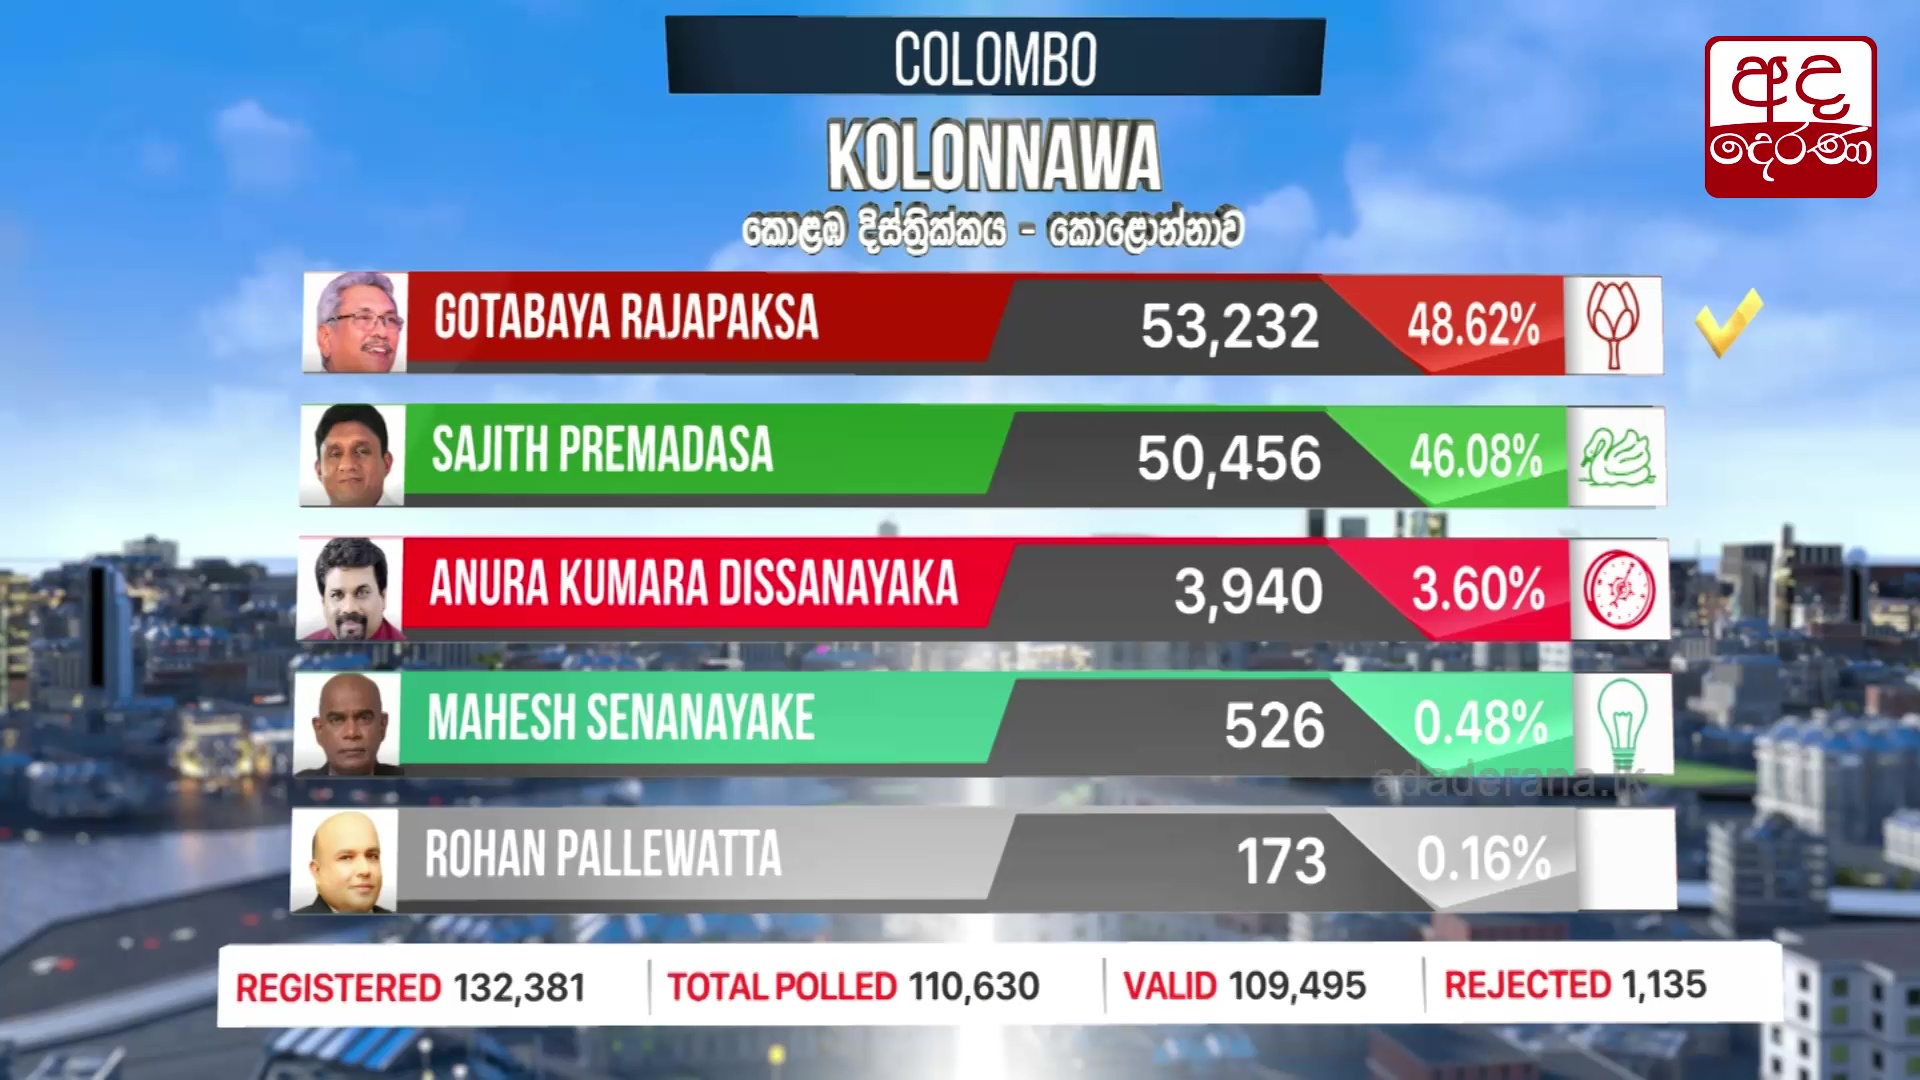 Presidential Election 2019: Kolonnawa division results